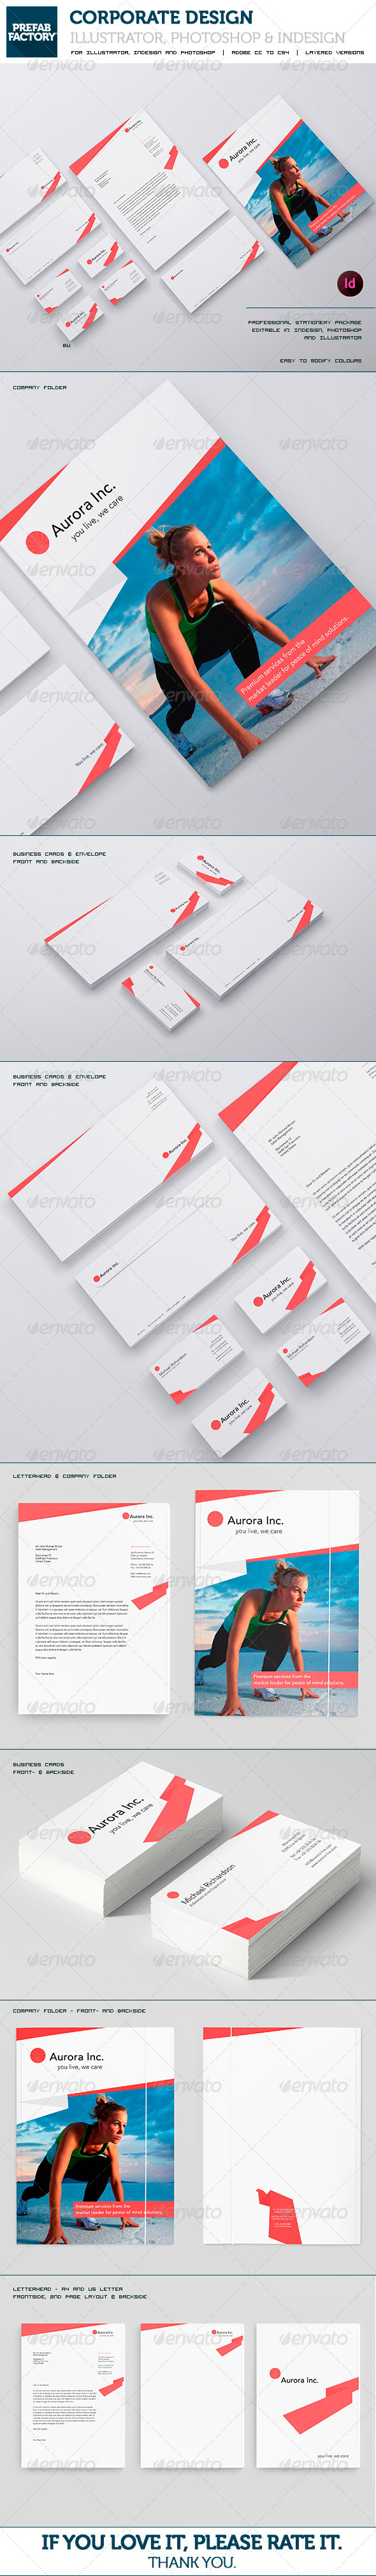 GraphicRiver Stationary and Corporate Identity Kit 5559852